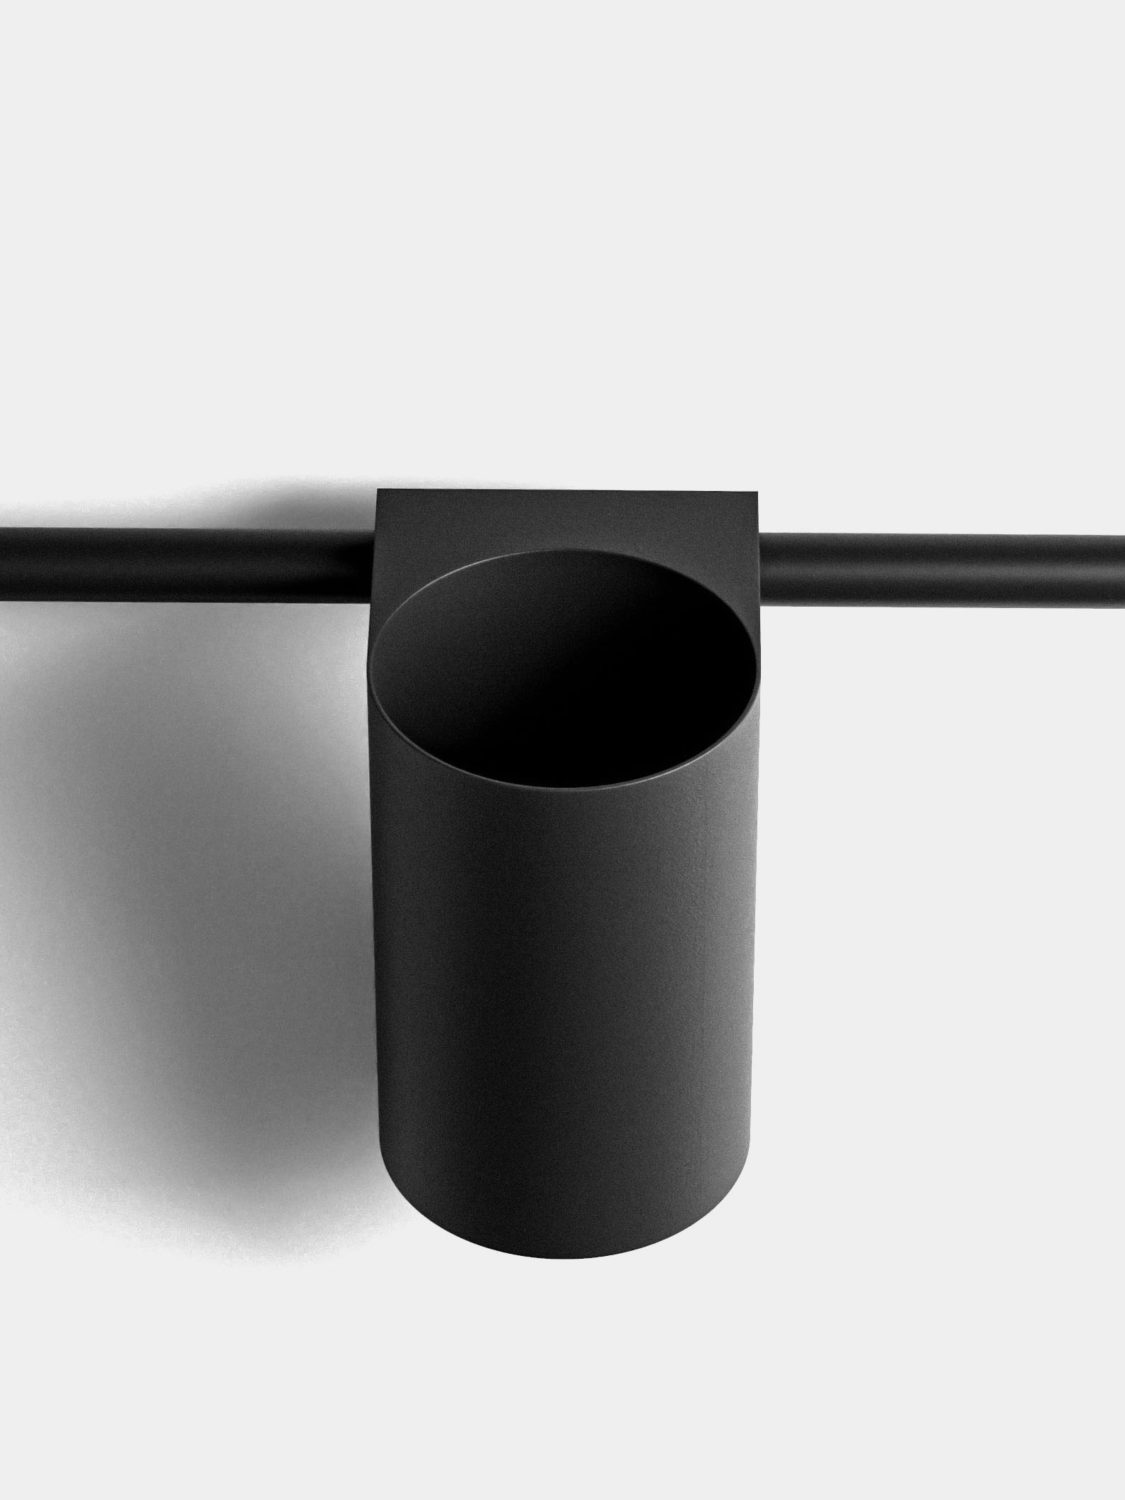 Hang Something in a Cylinder